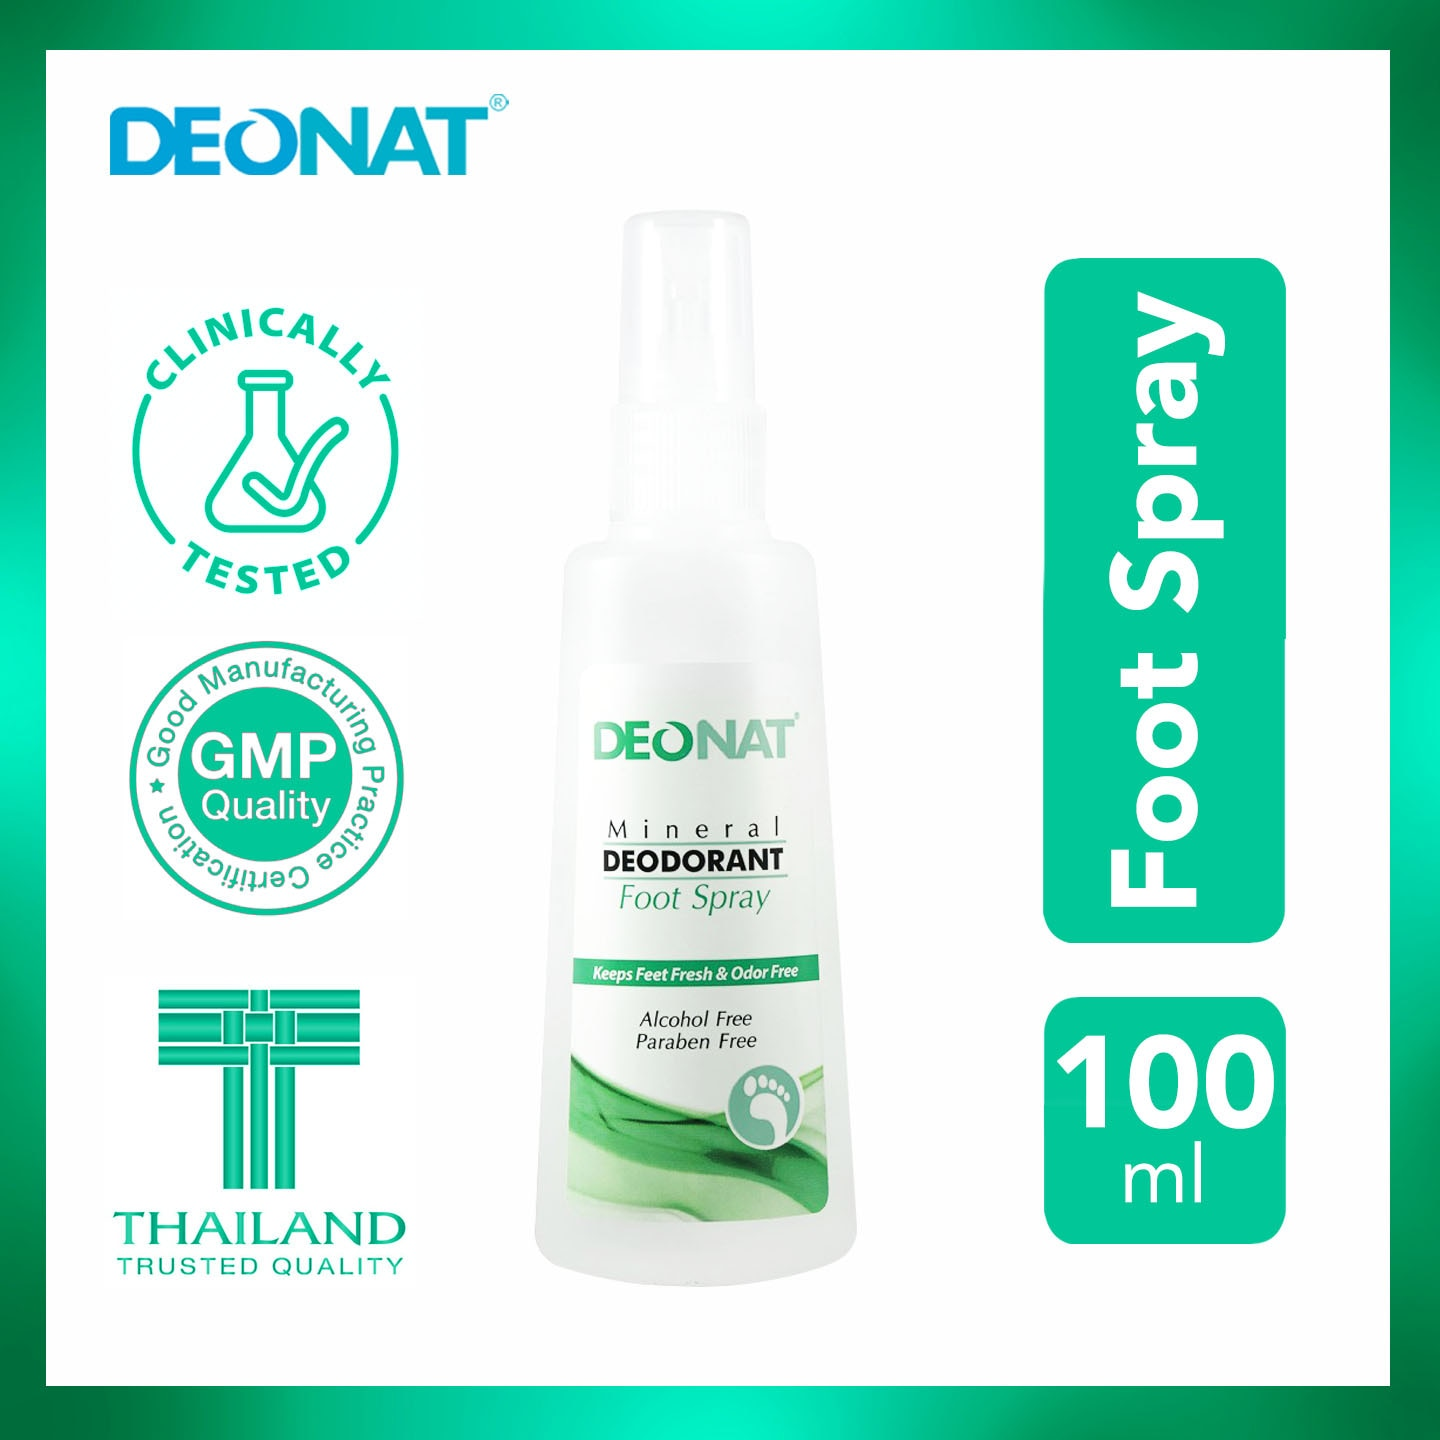 DEO NATMineral Deodorant Foot Spray 100ml,Foot CareFREE (1) Derma C Face Mask for every purchase of P800 worth of skin care items